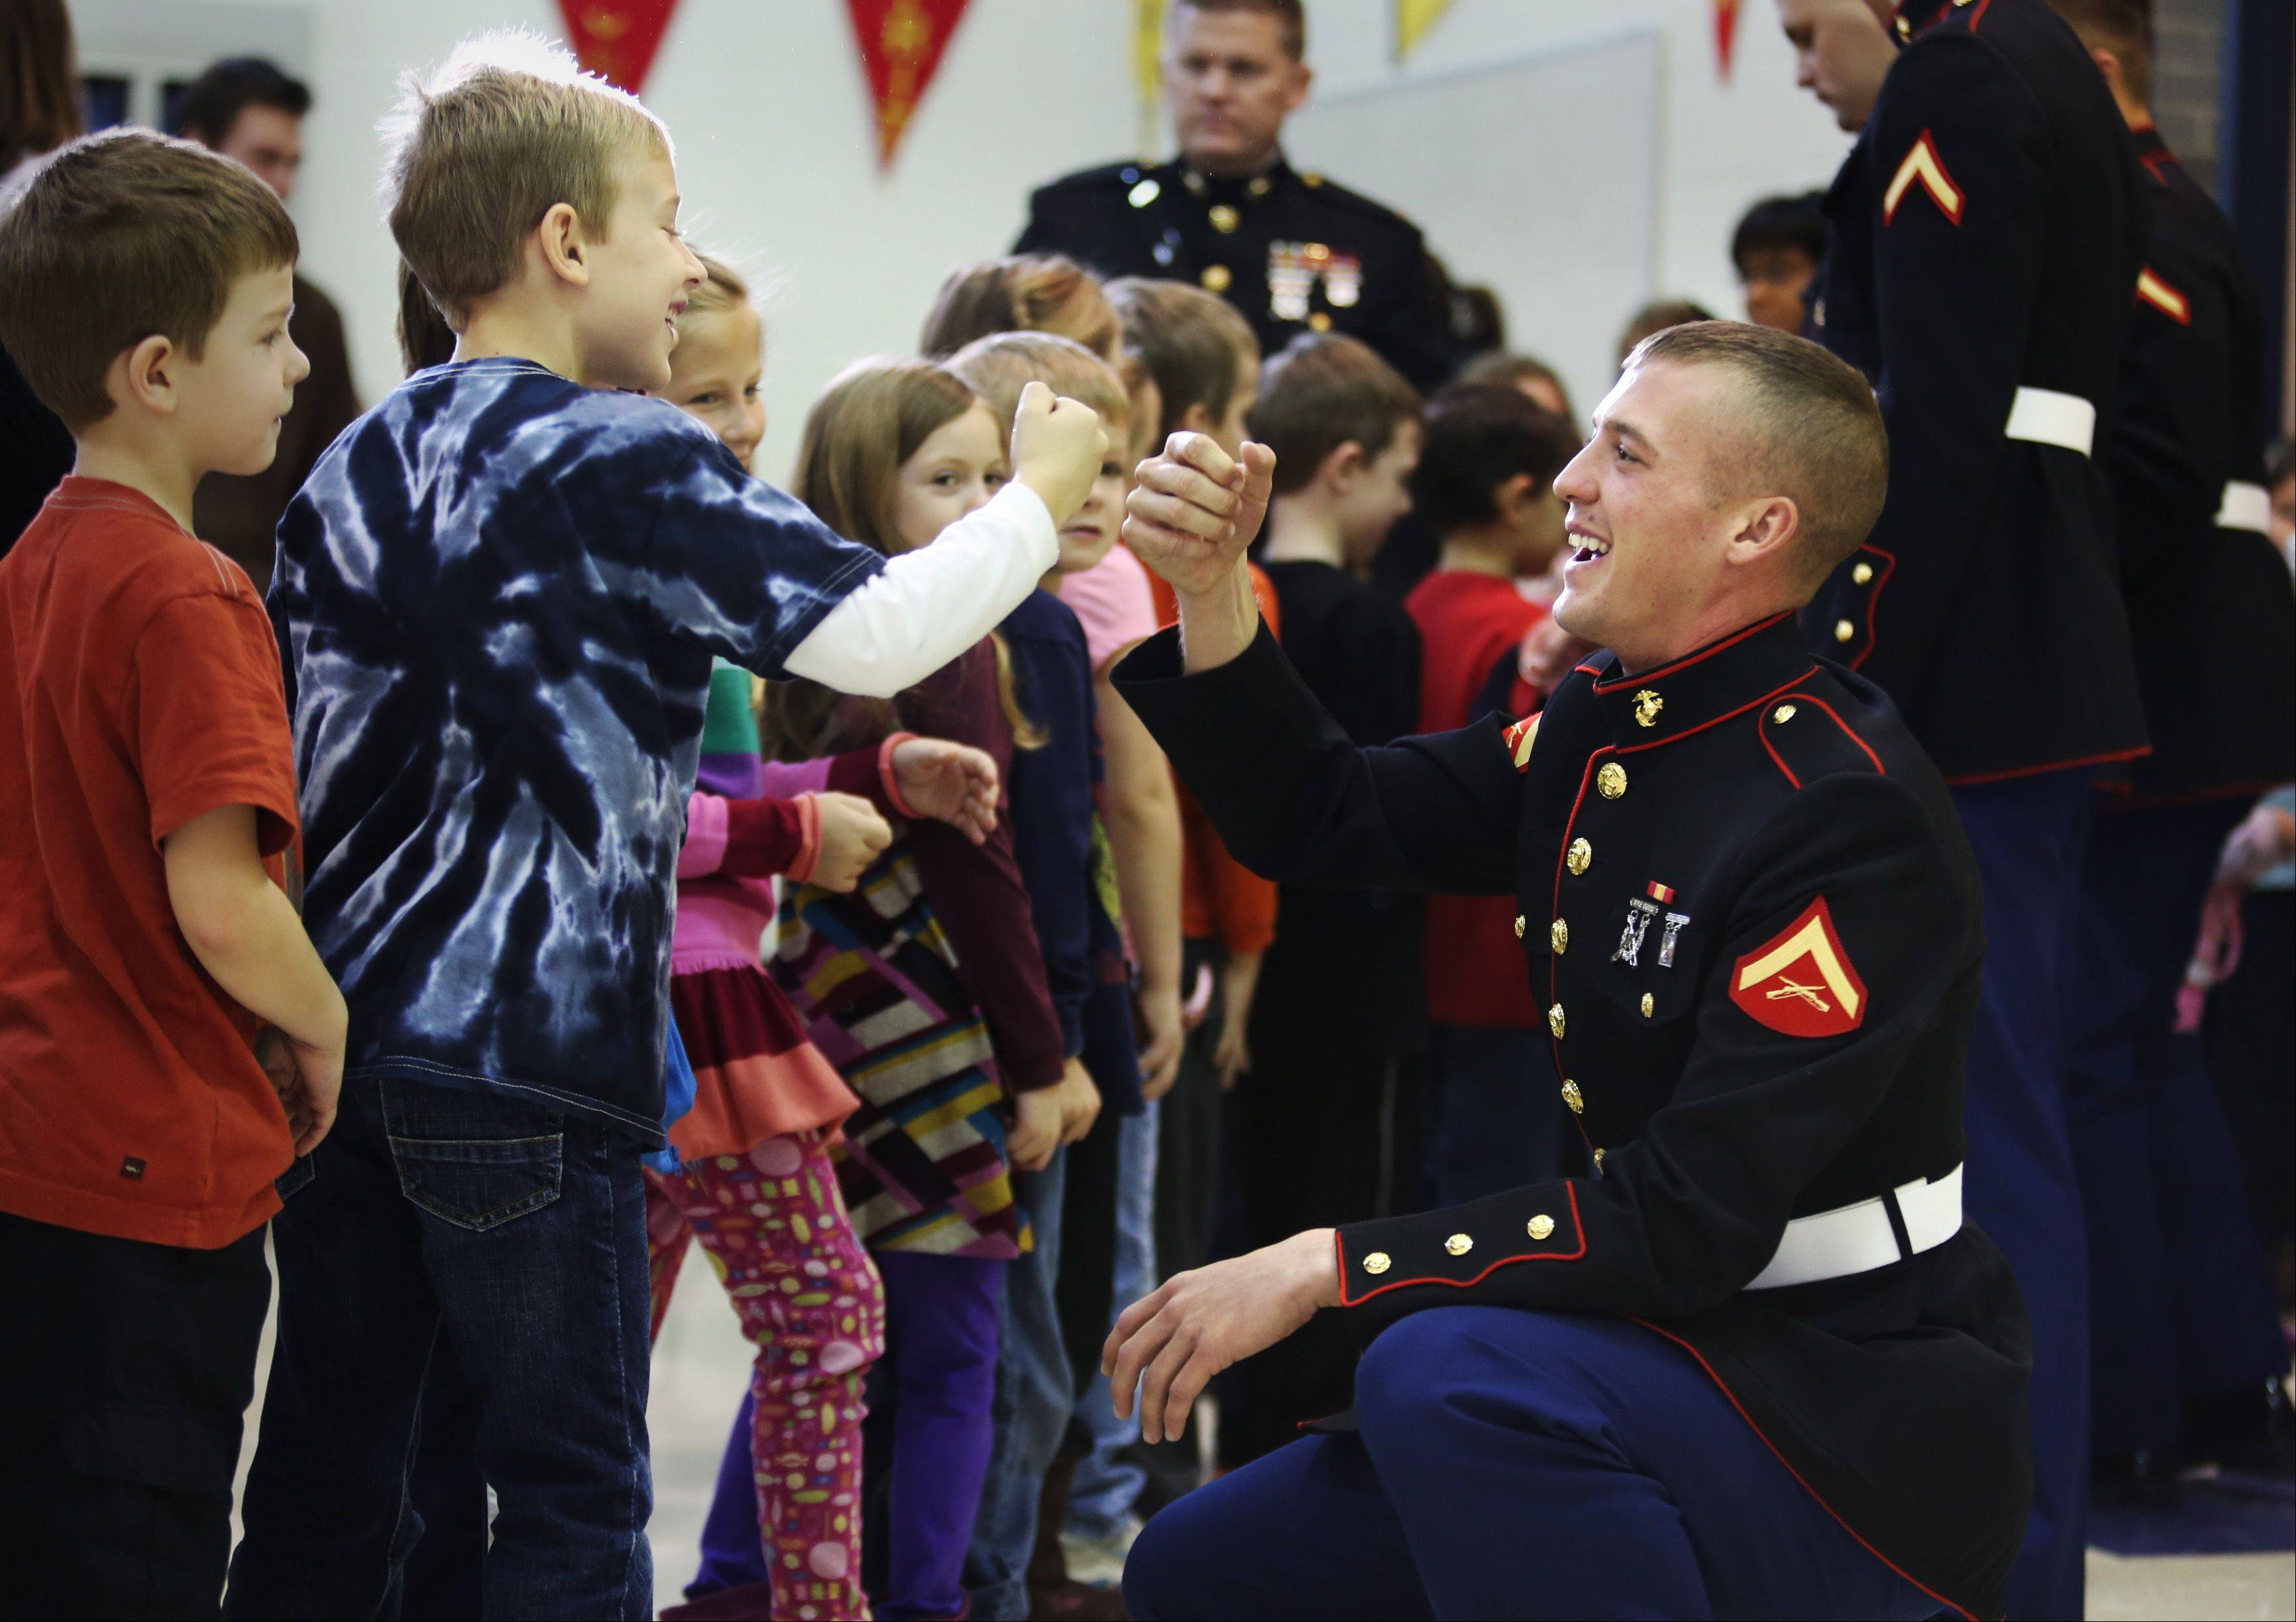 Lance Cpl. Jordan Patrick gets an enthusiast fist bump from Grace McWayne first-grader Gavin Rosengren Friday morning at the school. The students at the school collected over 700 toys for the Toys for Tots program which will be distributed to children throughout Kane County. Patrick is from Oswego, and currently stationed in Twentynine Palms, California.